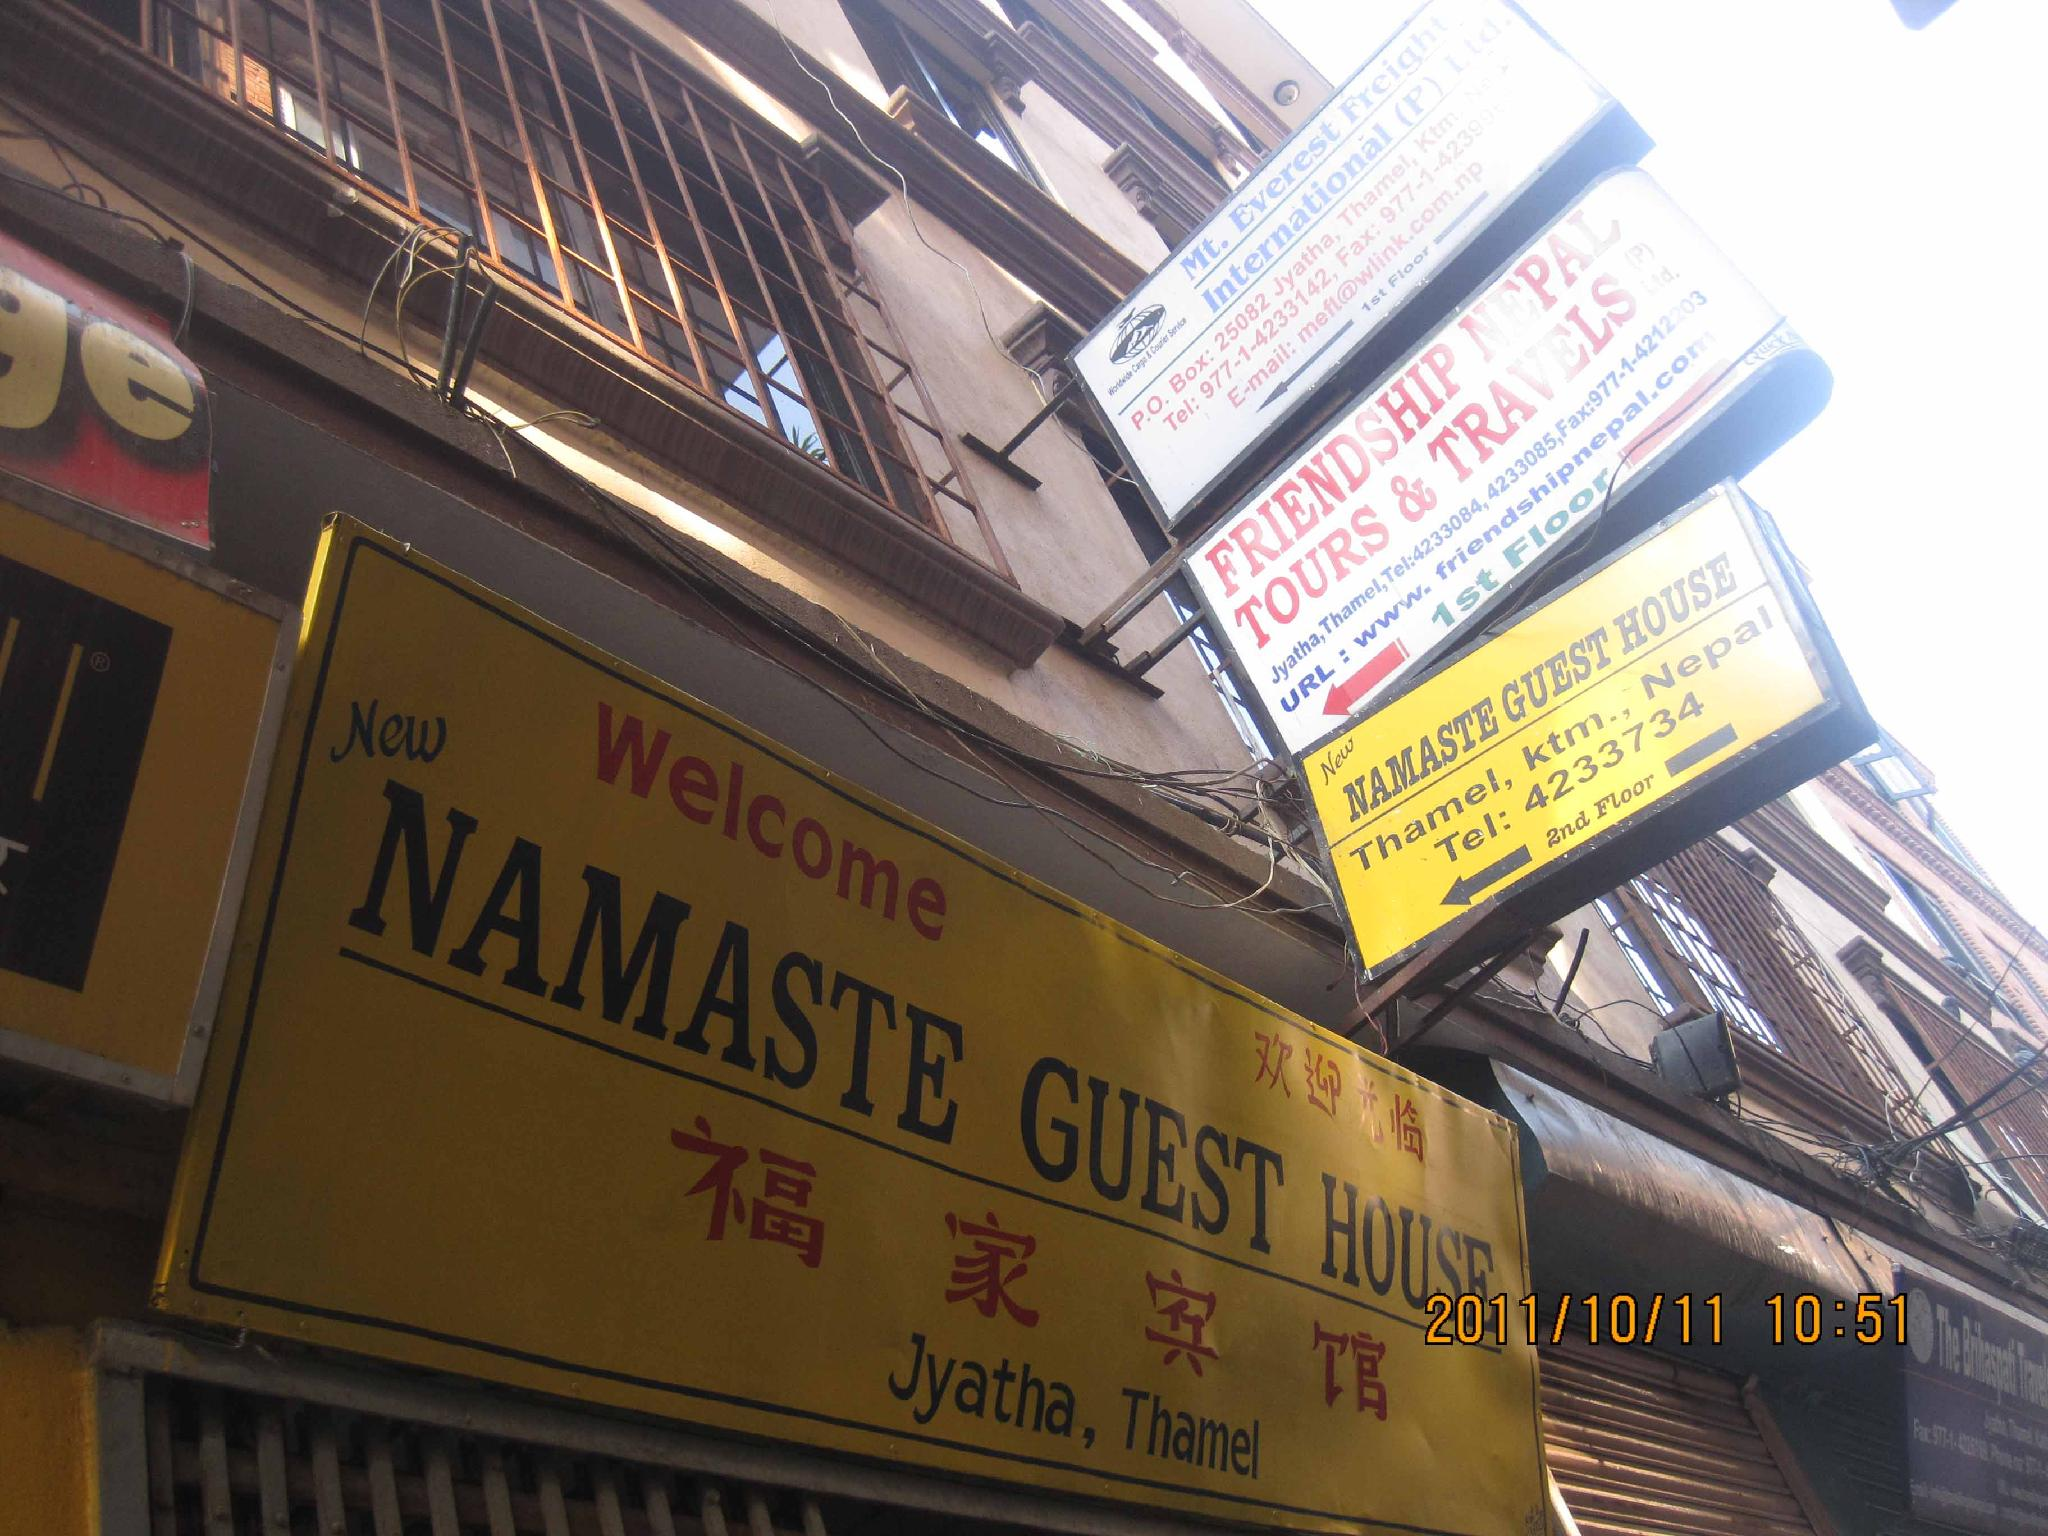 New Namaste Guest House